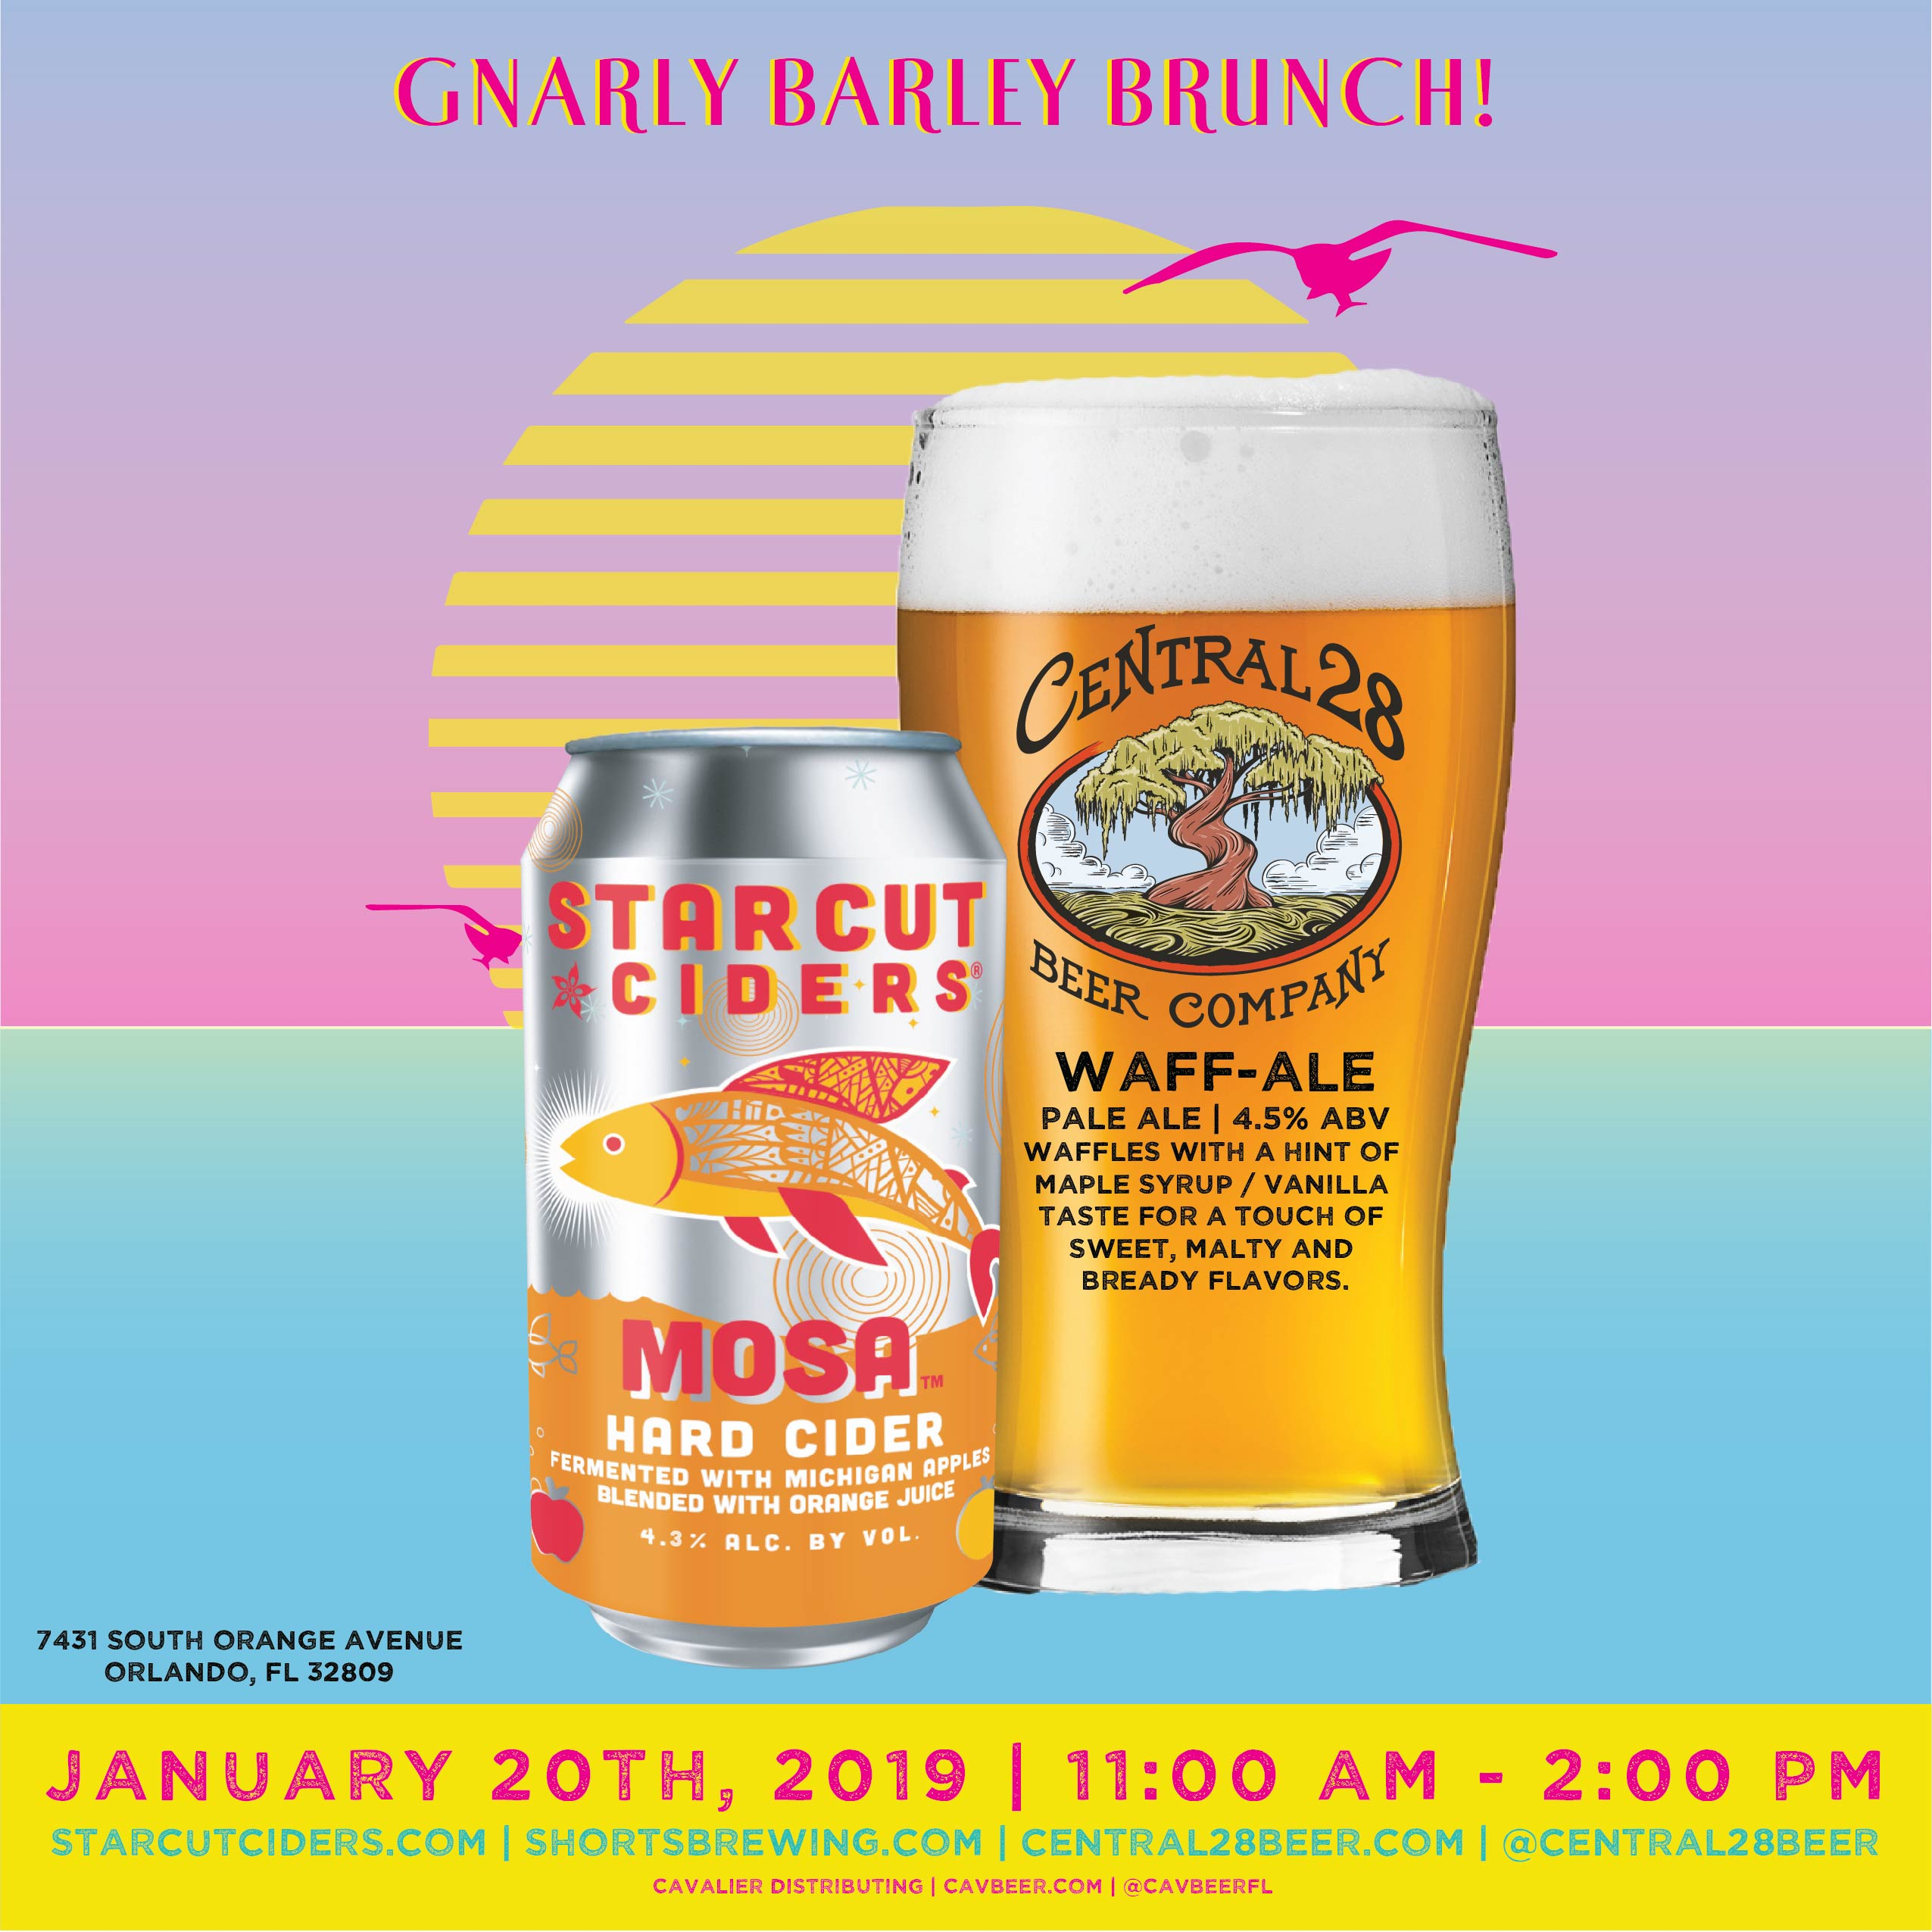 Brunch with Starcut Ciders & Central 28 @ Gnarly Barley